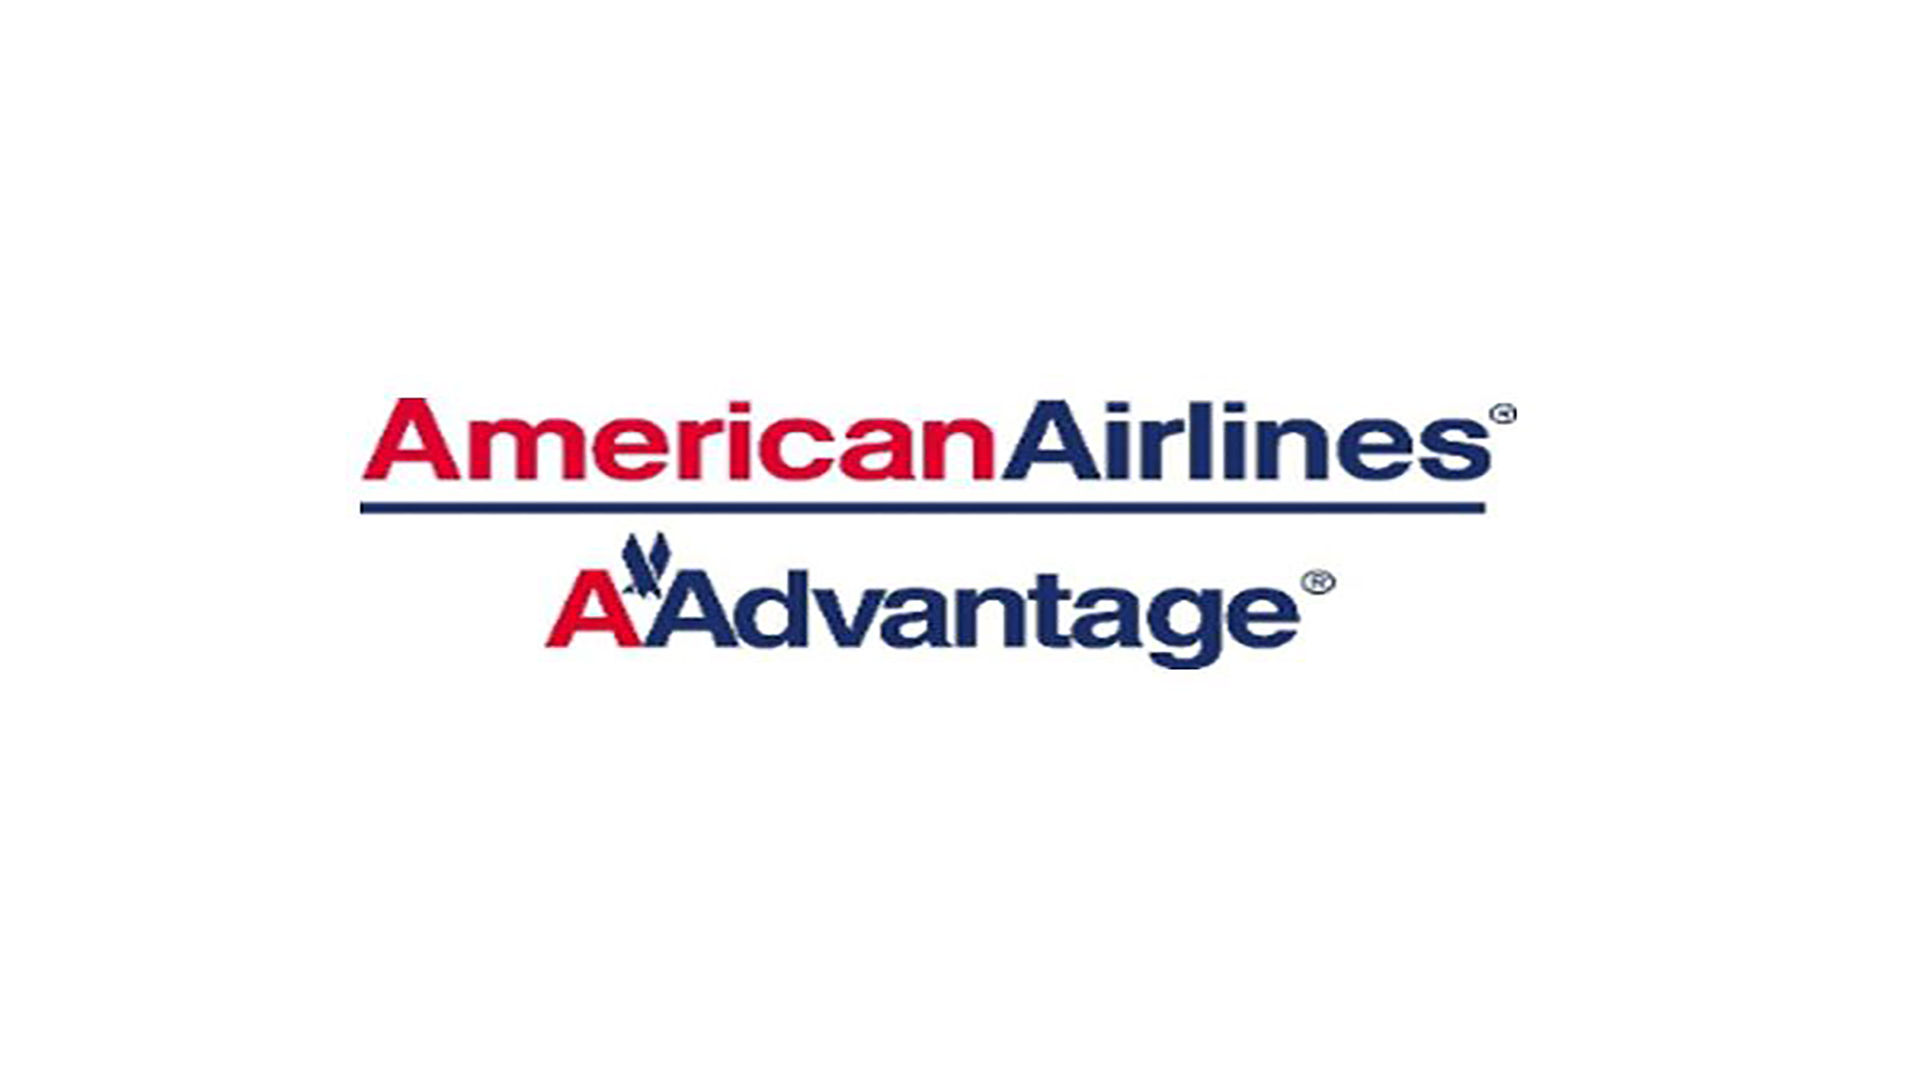 American Airlines AAdvantage Miles!